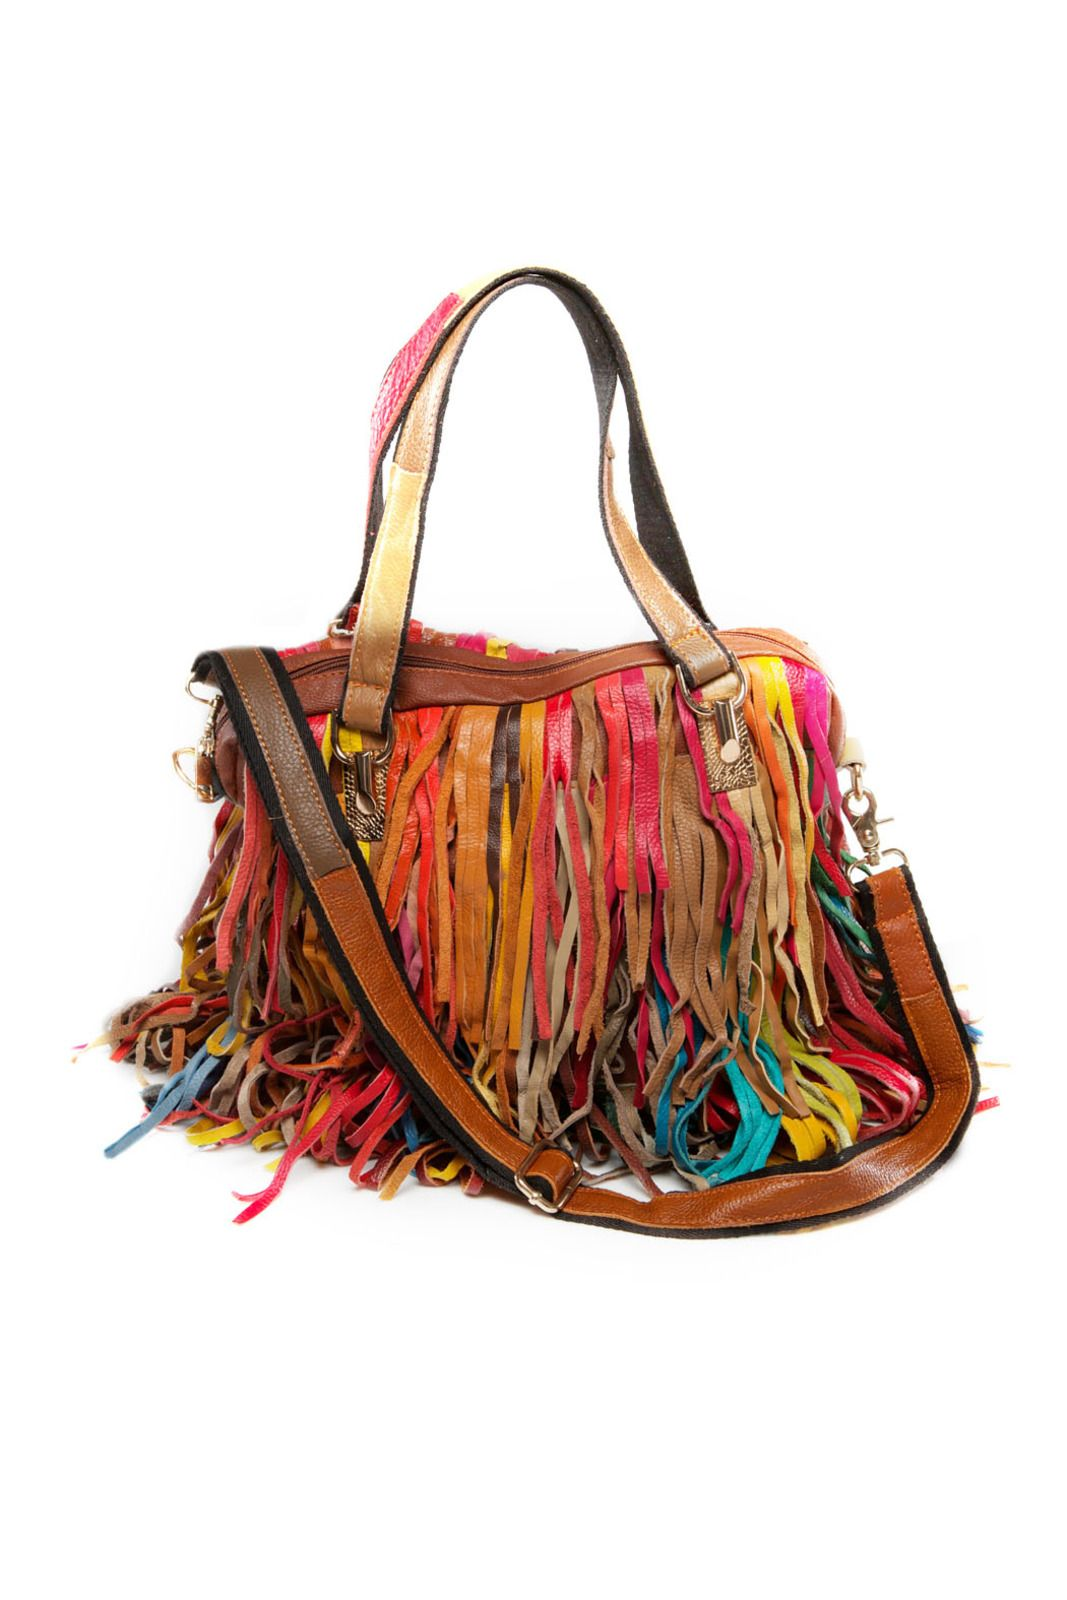 Fringe Purse Bags Multi Color Handbag